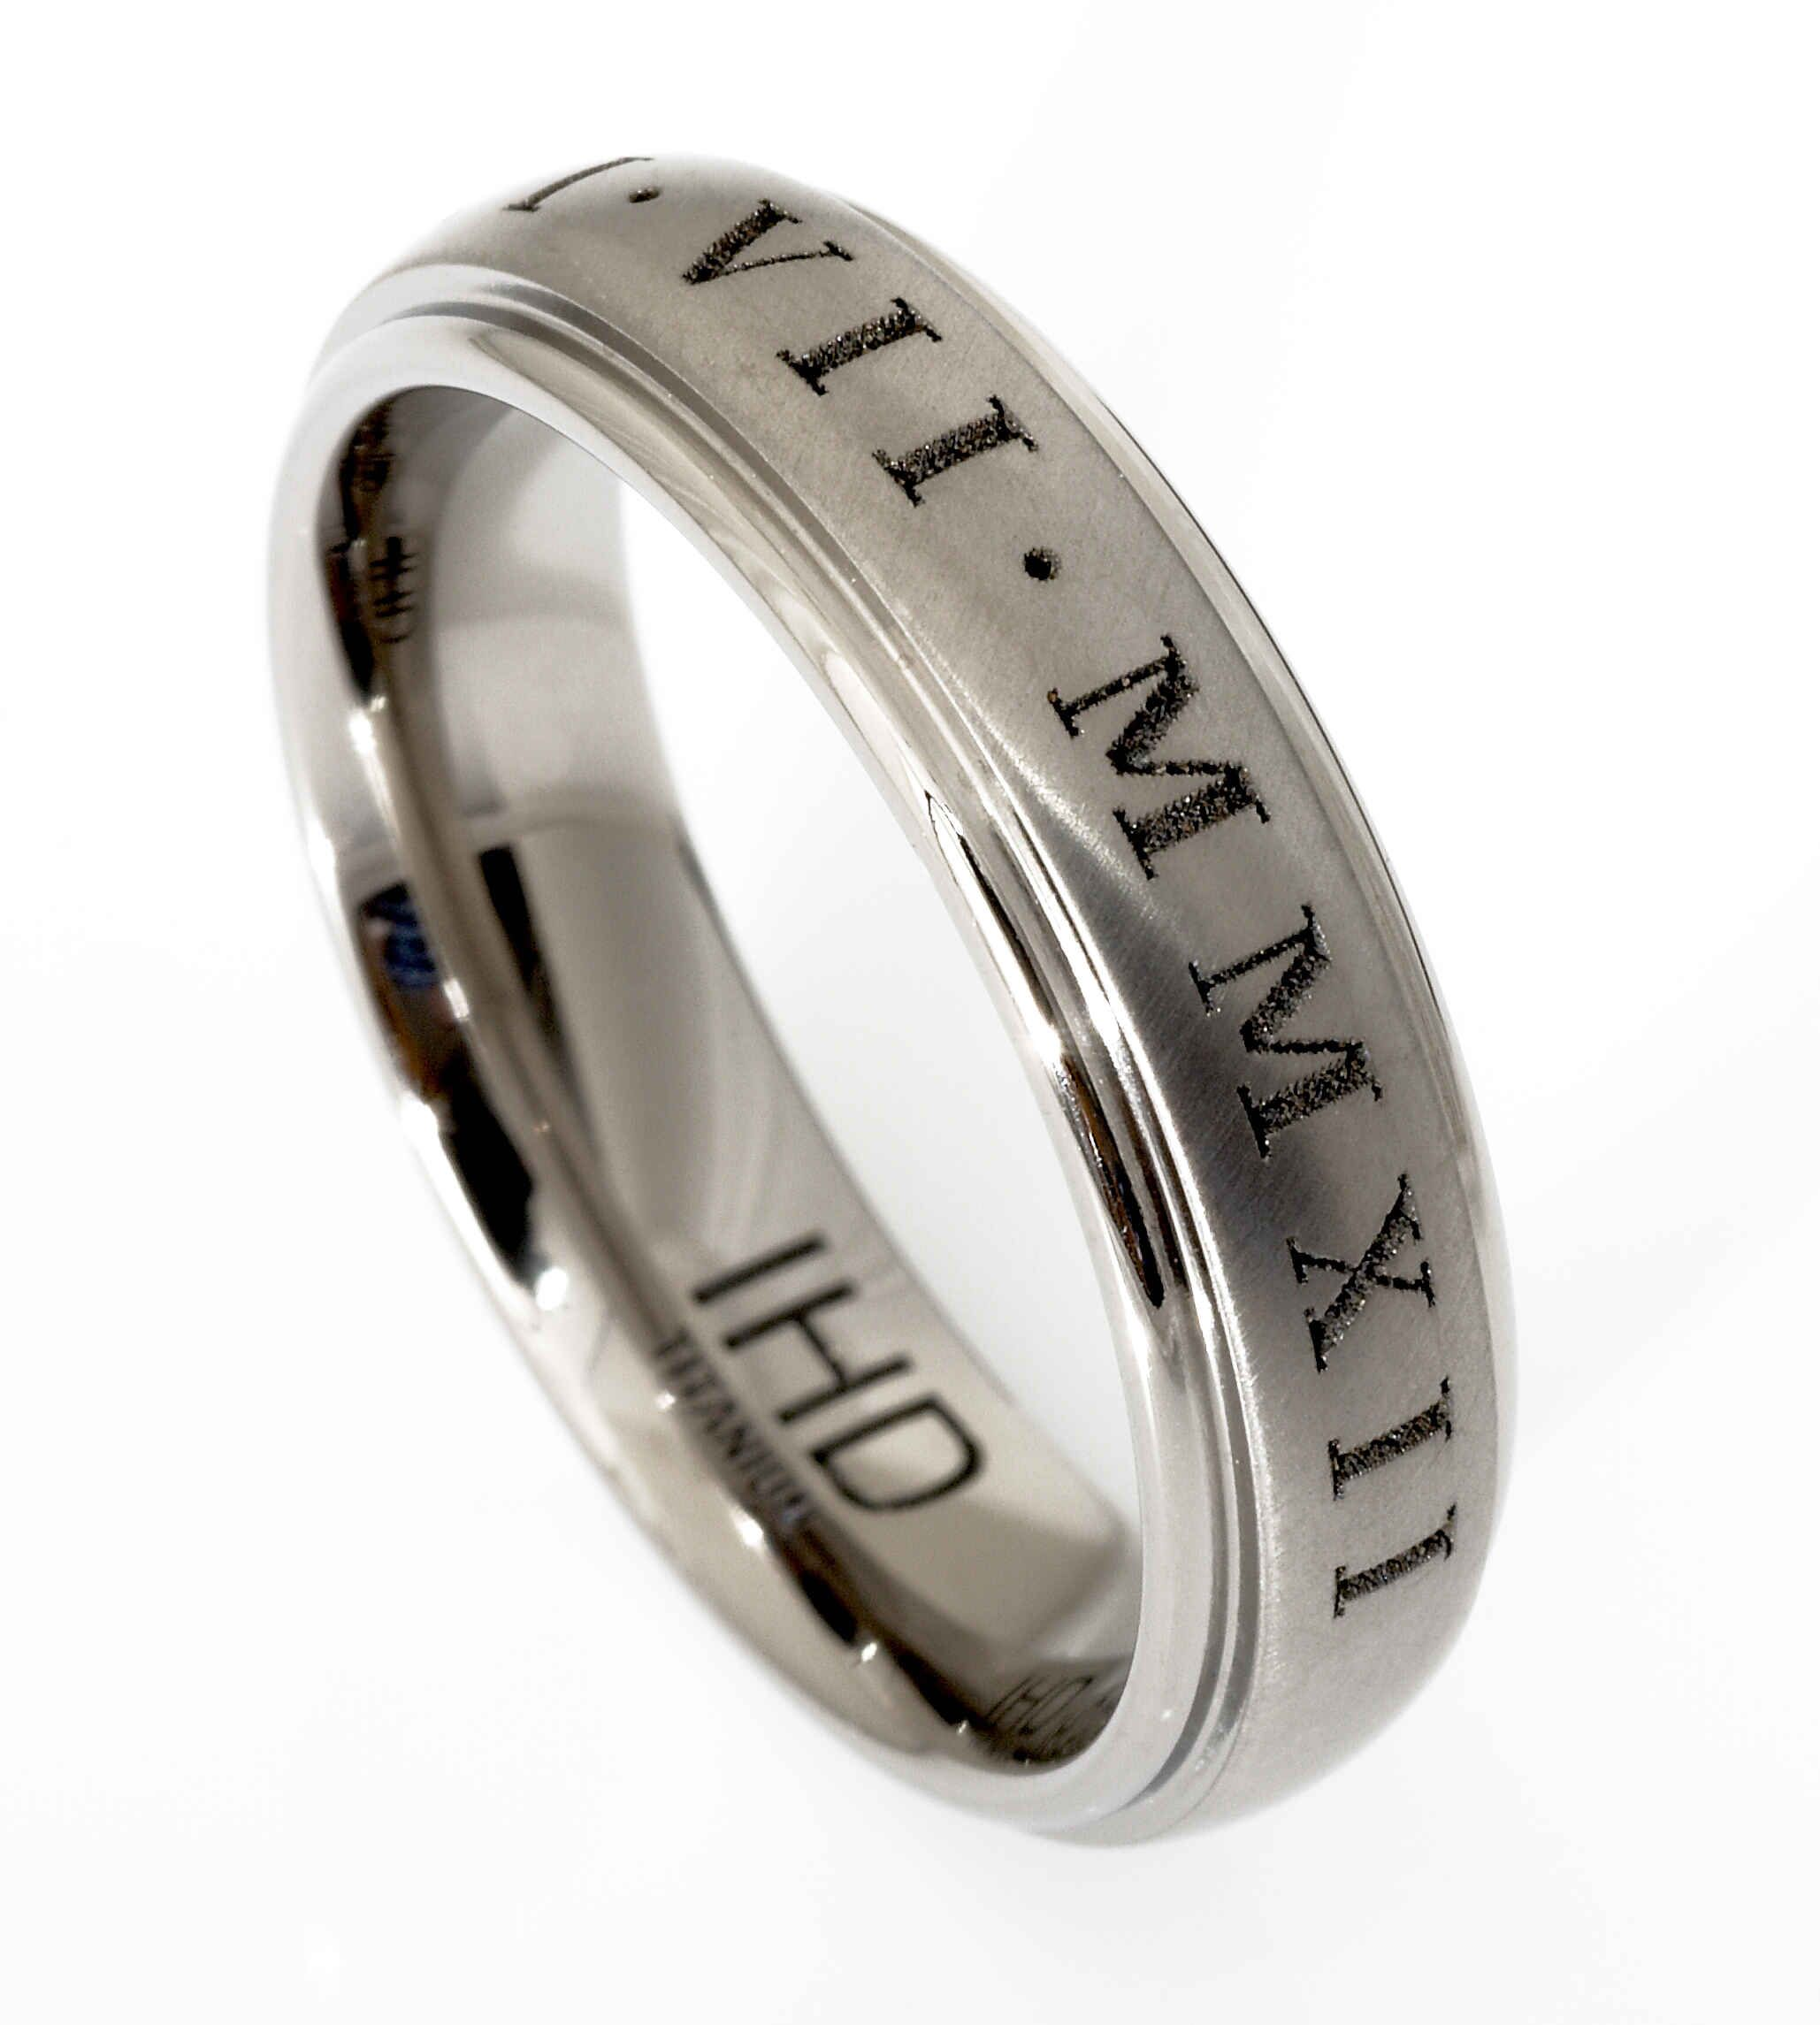 Pin on Gents Wedding Rings